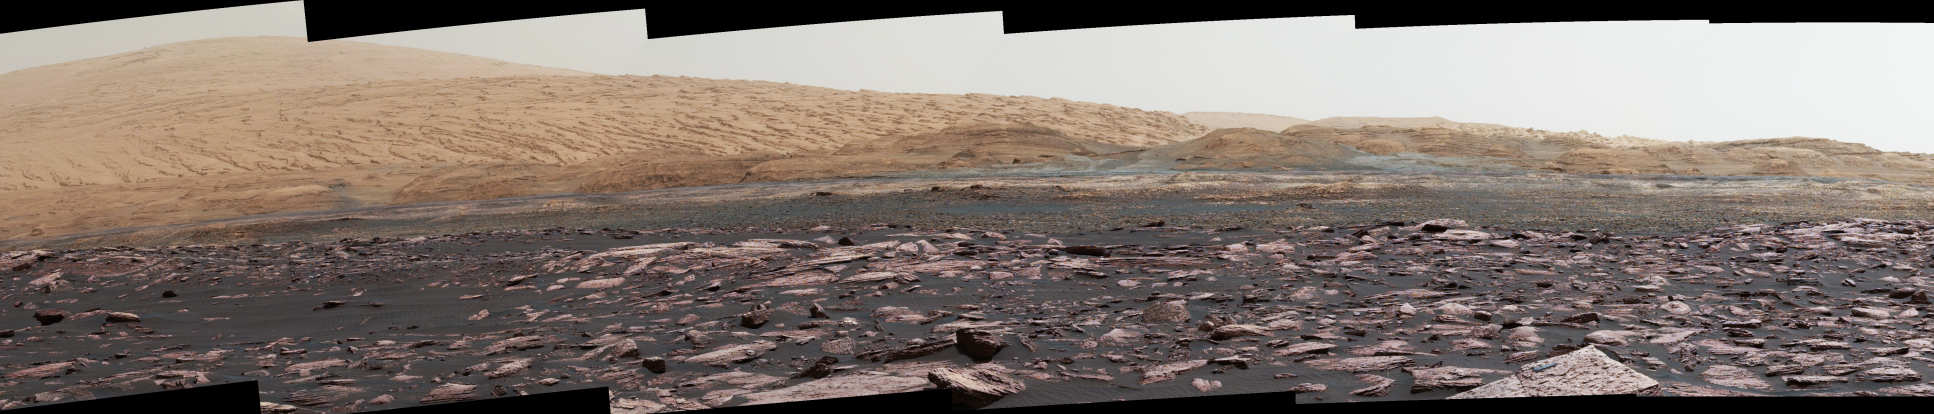 Photo taken by the Curiosity Rover on Mars showing a rocky, mountainous landscape.